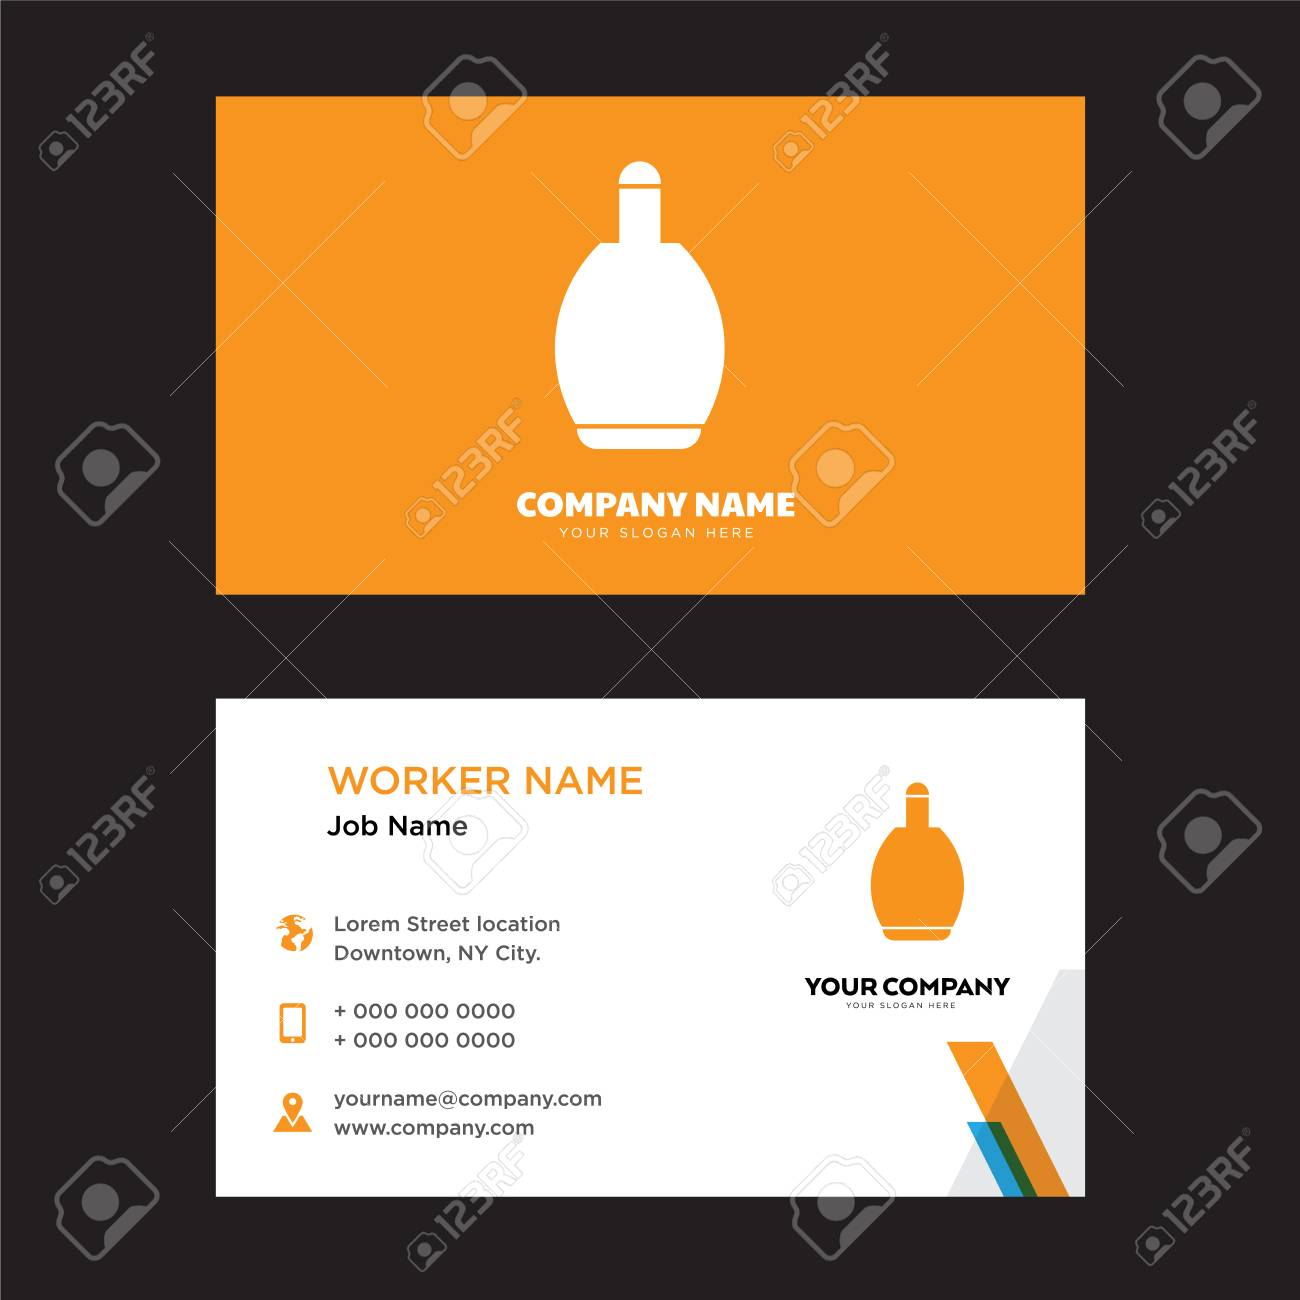 Circular Perfume Bottle Business Card Design Template Visiting - Template of business card